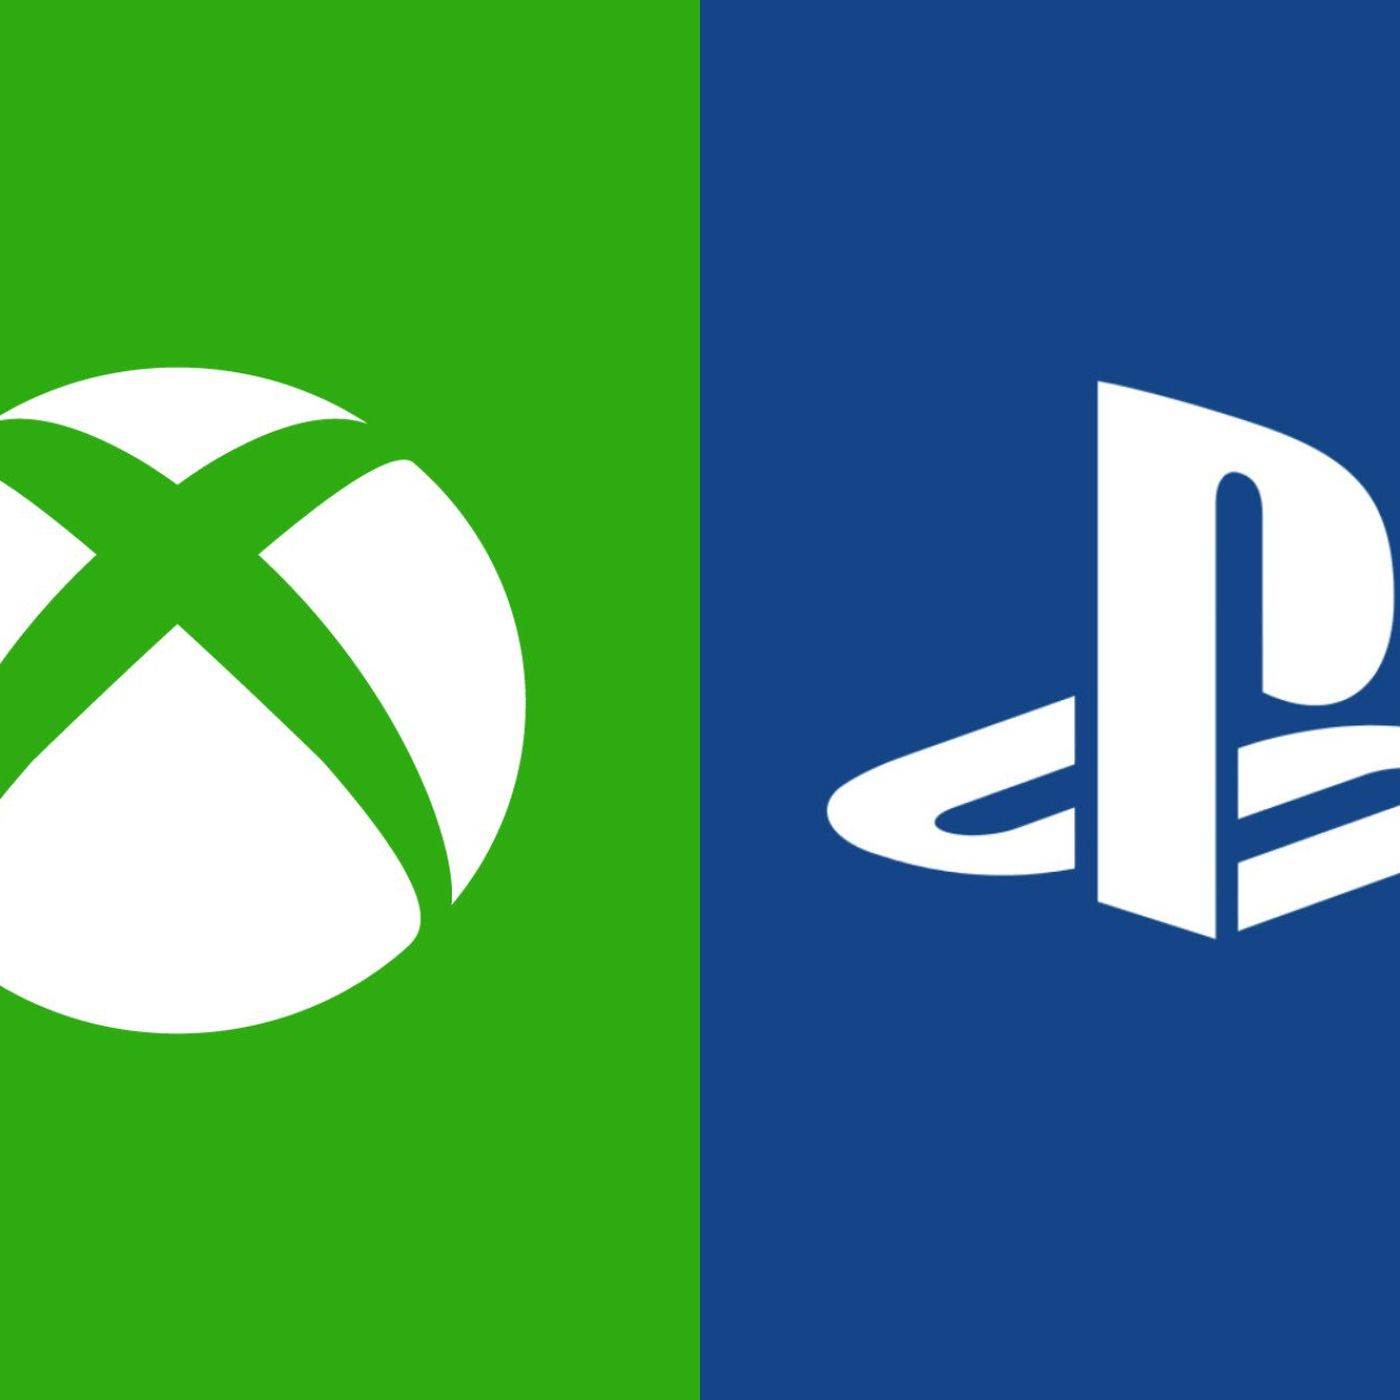 Microsoft and Sony are teaming up for the future of gaming